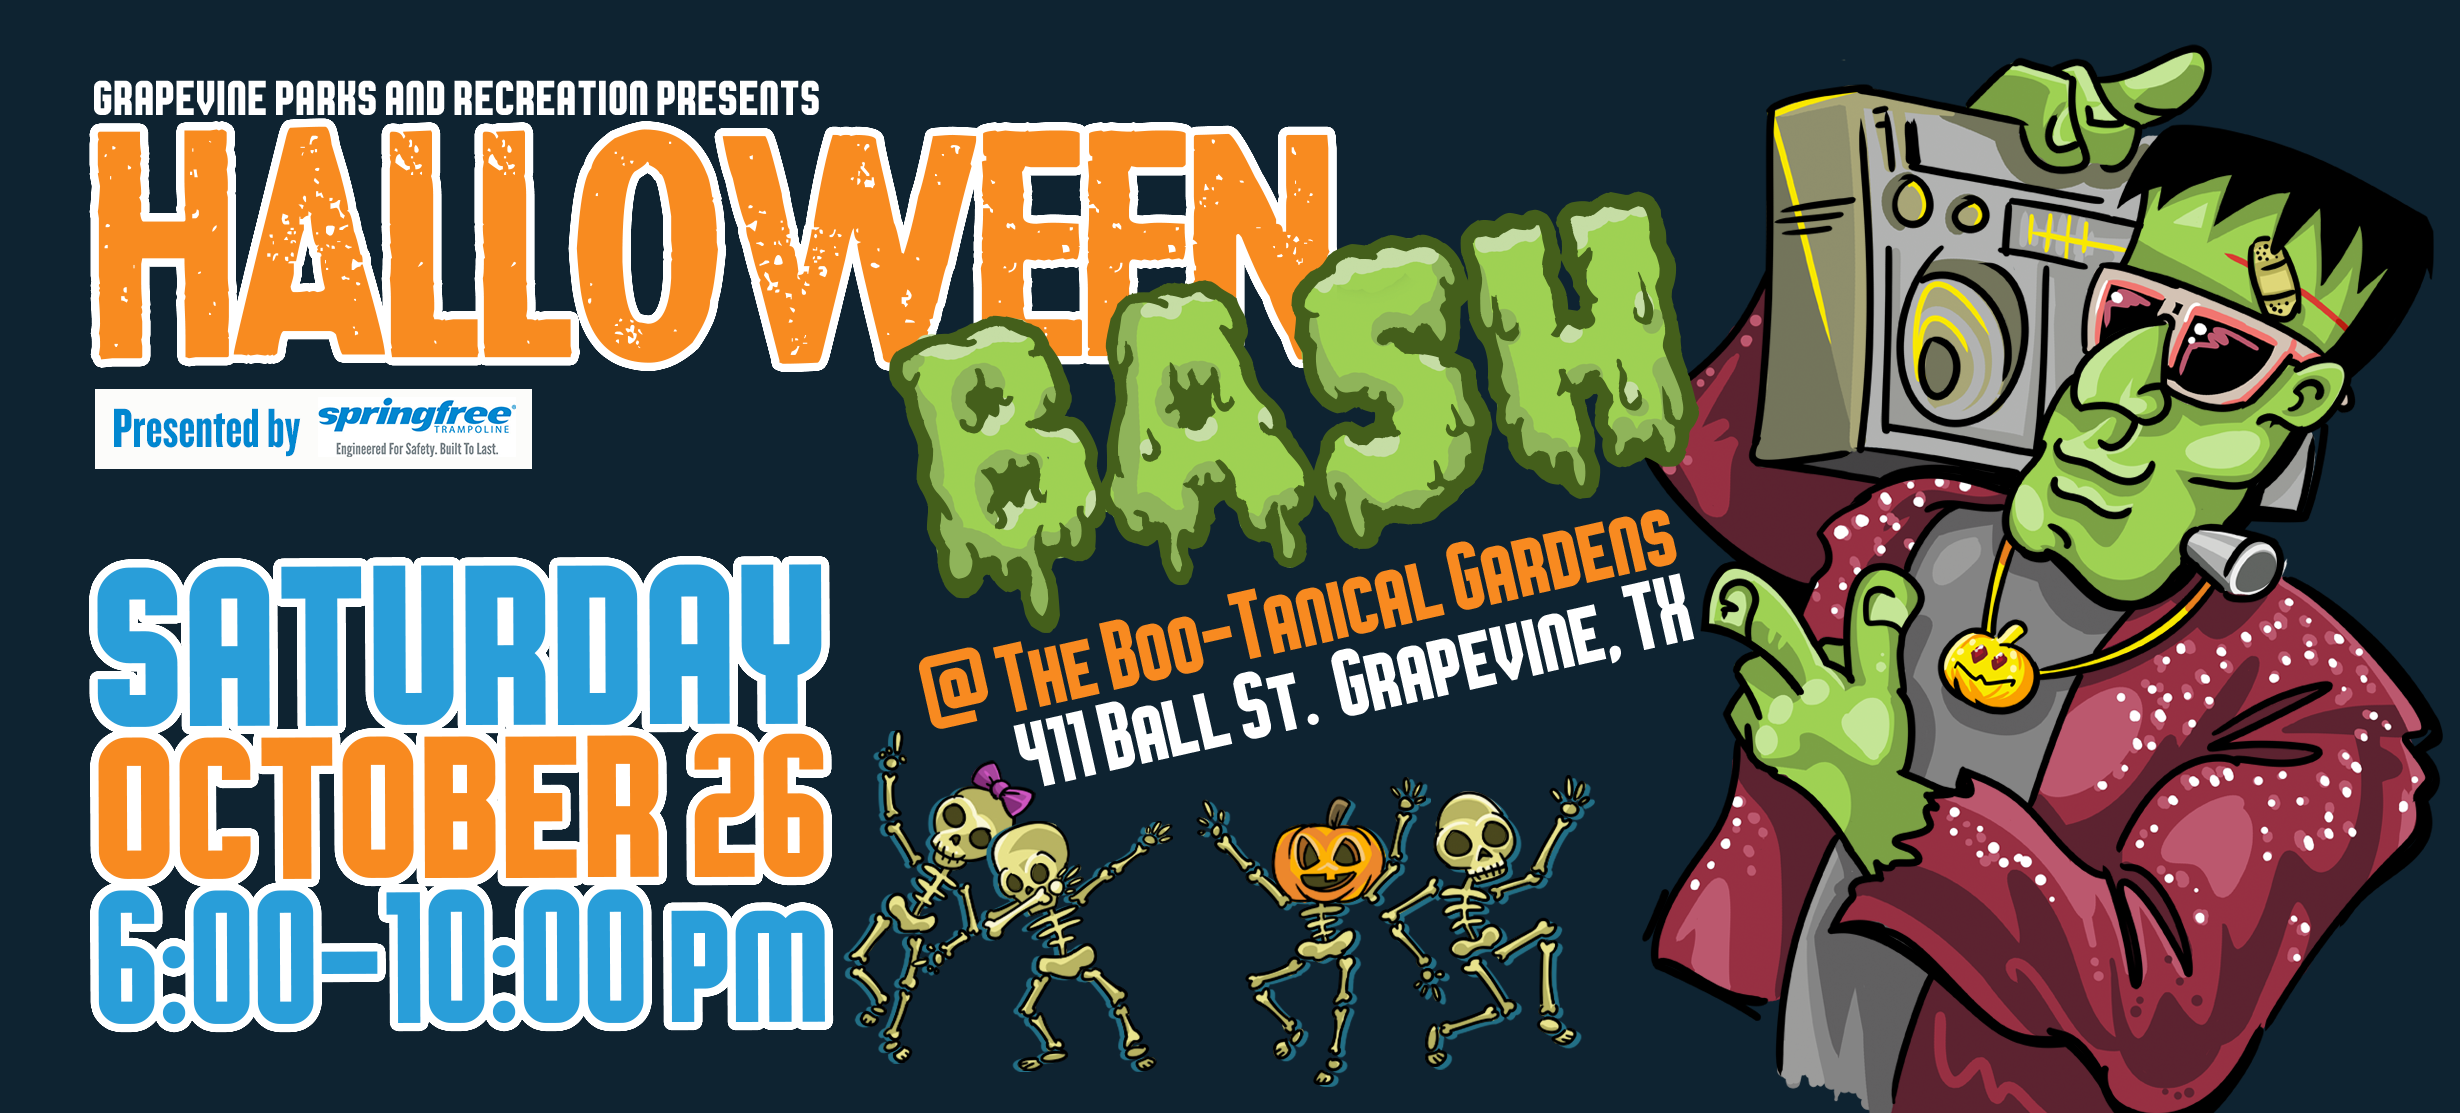 Halloween Bash at the BOO-tanical Gardens – October 26, 2019 – ADULT